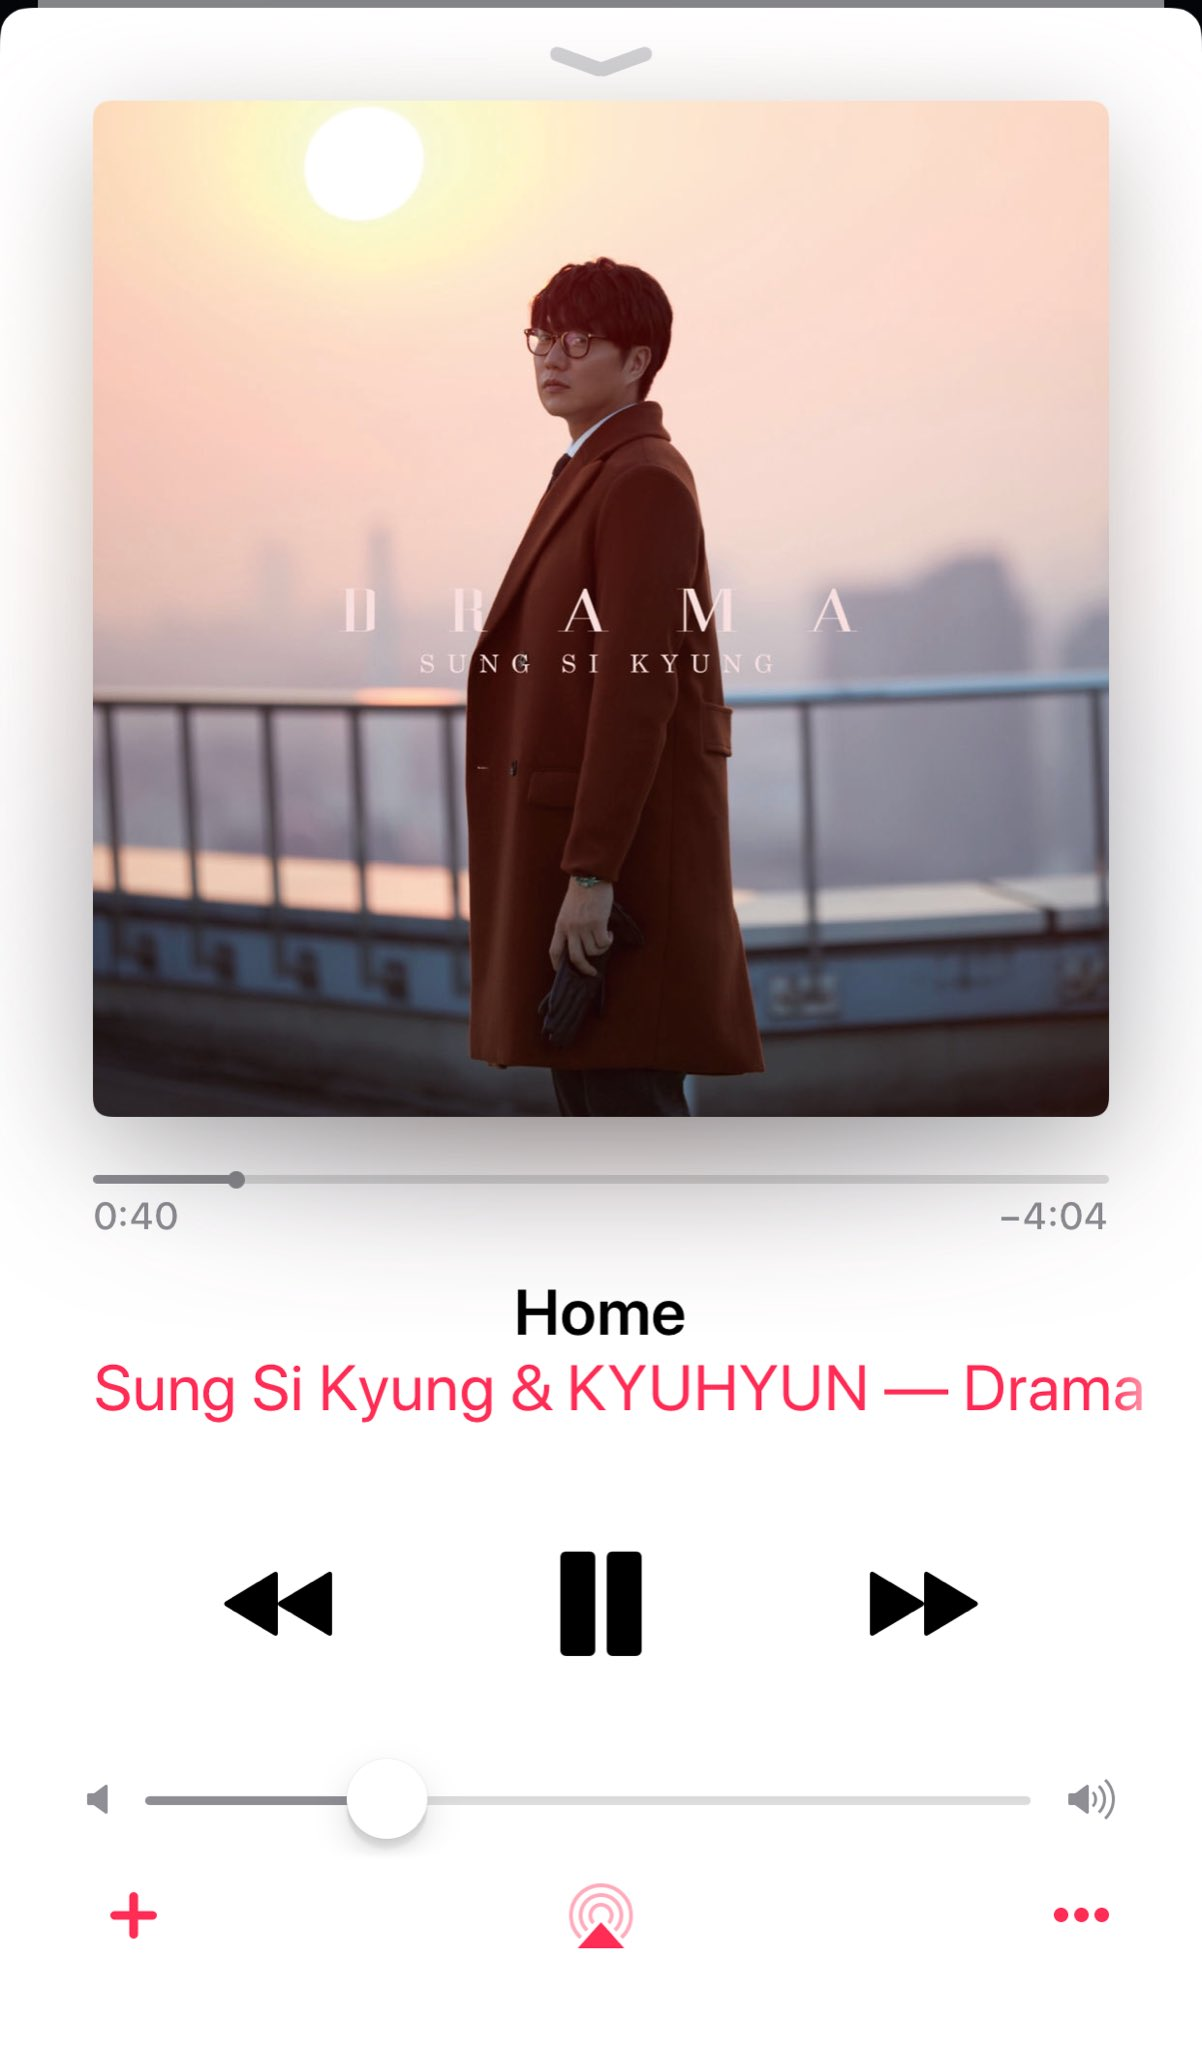 Home - Sung Sikyung feat. #KYUHYUN is out now on itunes and apple music ���� https://t.co/Y2FwEa9Rem